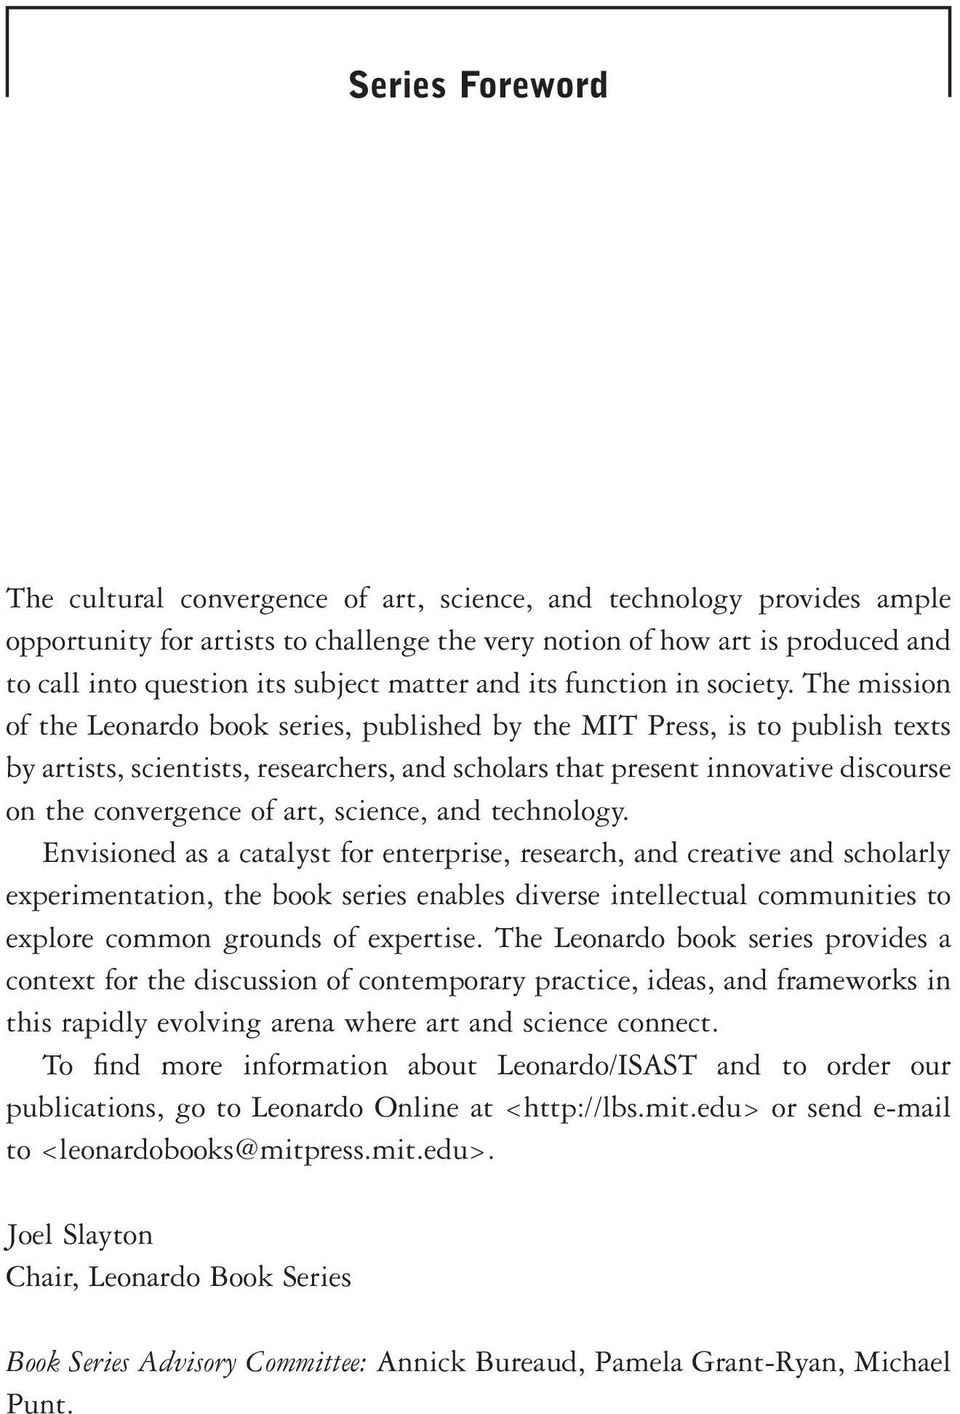 The mission of the Leonardo book series, published by the MIT Press, is to publish texts by artists, scientists, researchers, and scholars that present innovative discourse on the convergence of art,